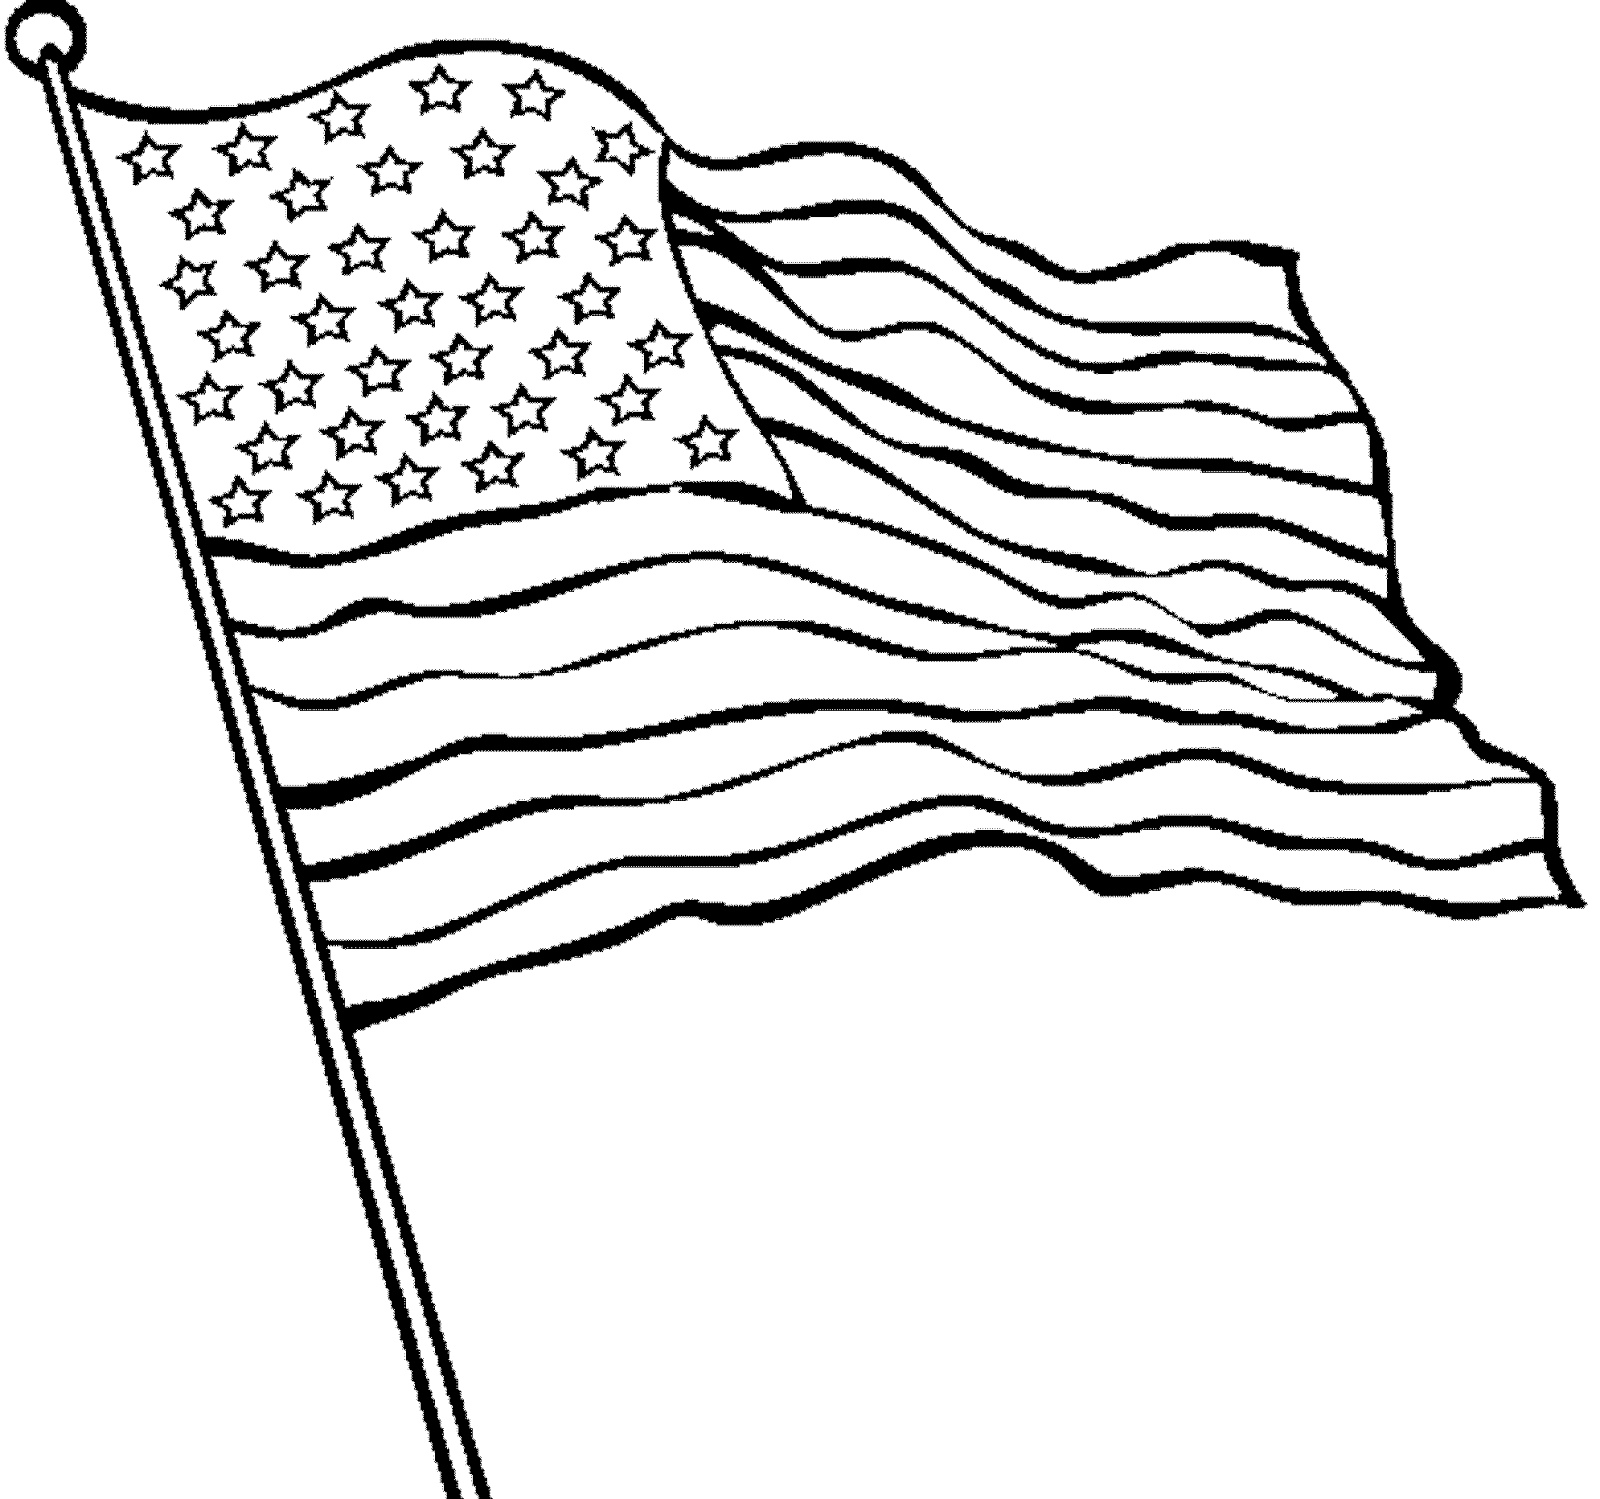 Quizlet profzara the united states of america for Coloring page of the american flag